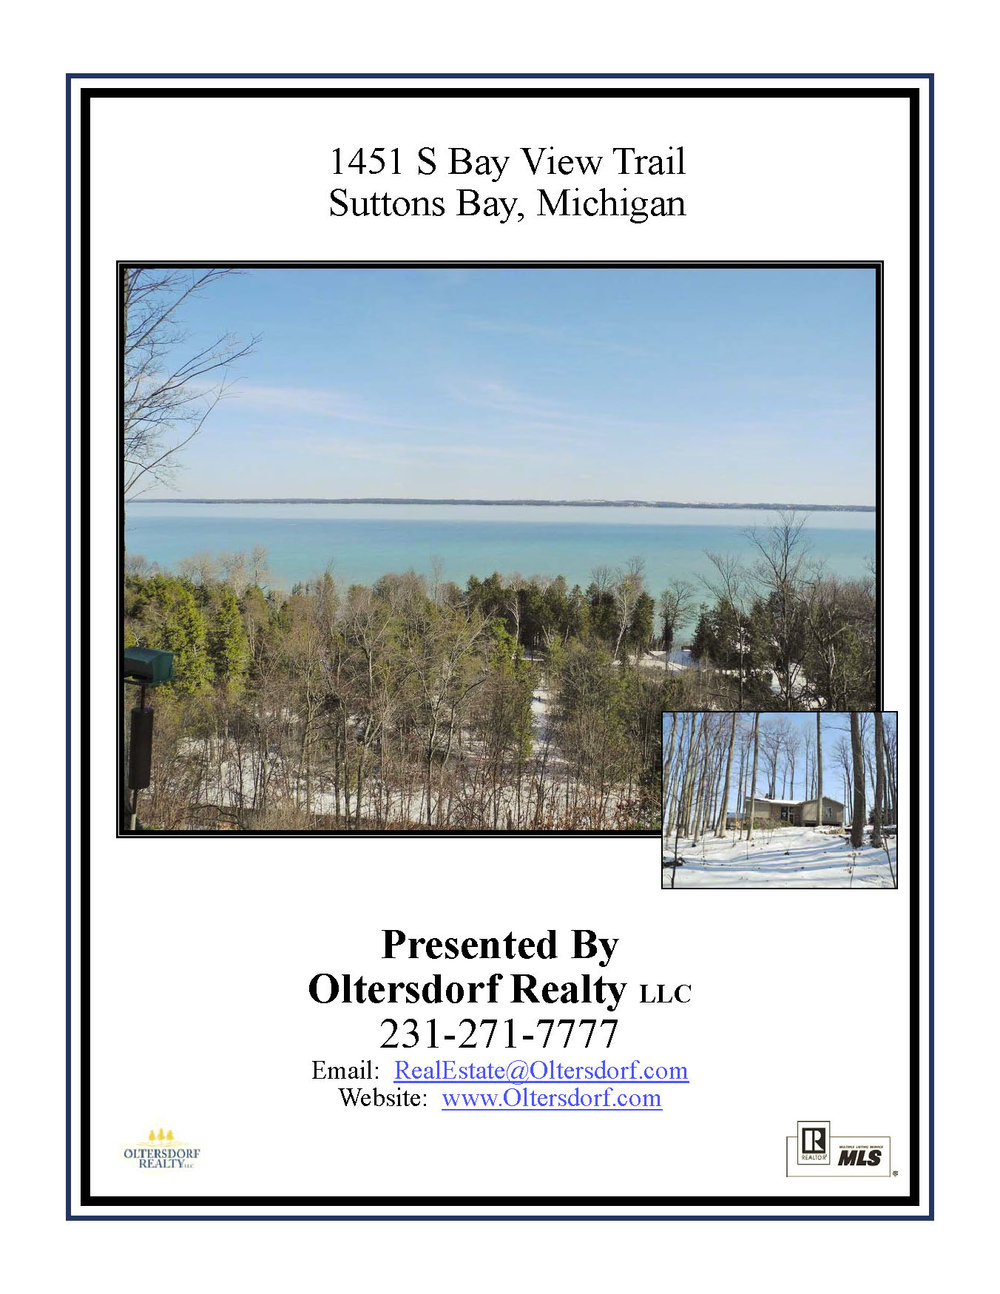 1451 S Bay View Trail, Suttons Bay, MI – Spectacular Panoramic West Bay Views, real estate for sale by Oltersdorf Realty LLC (4).jpg